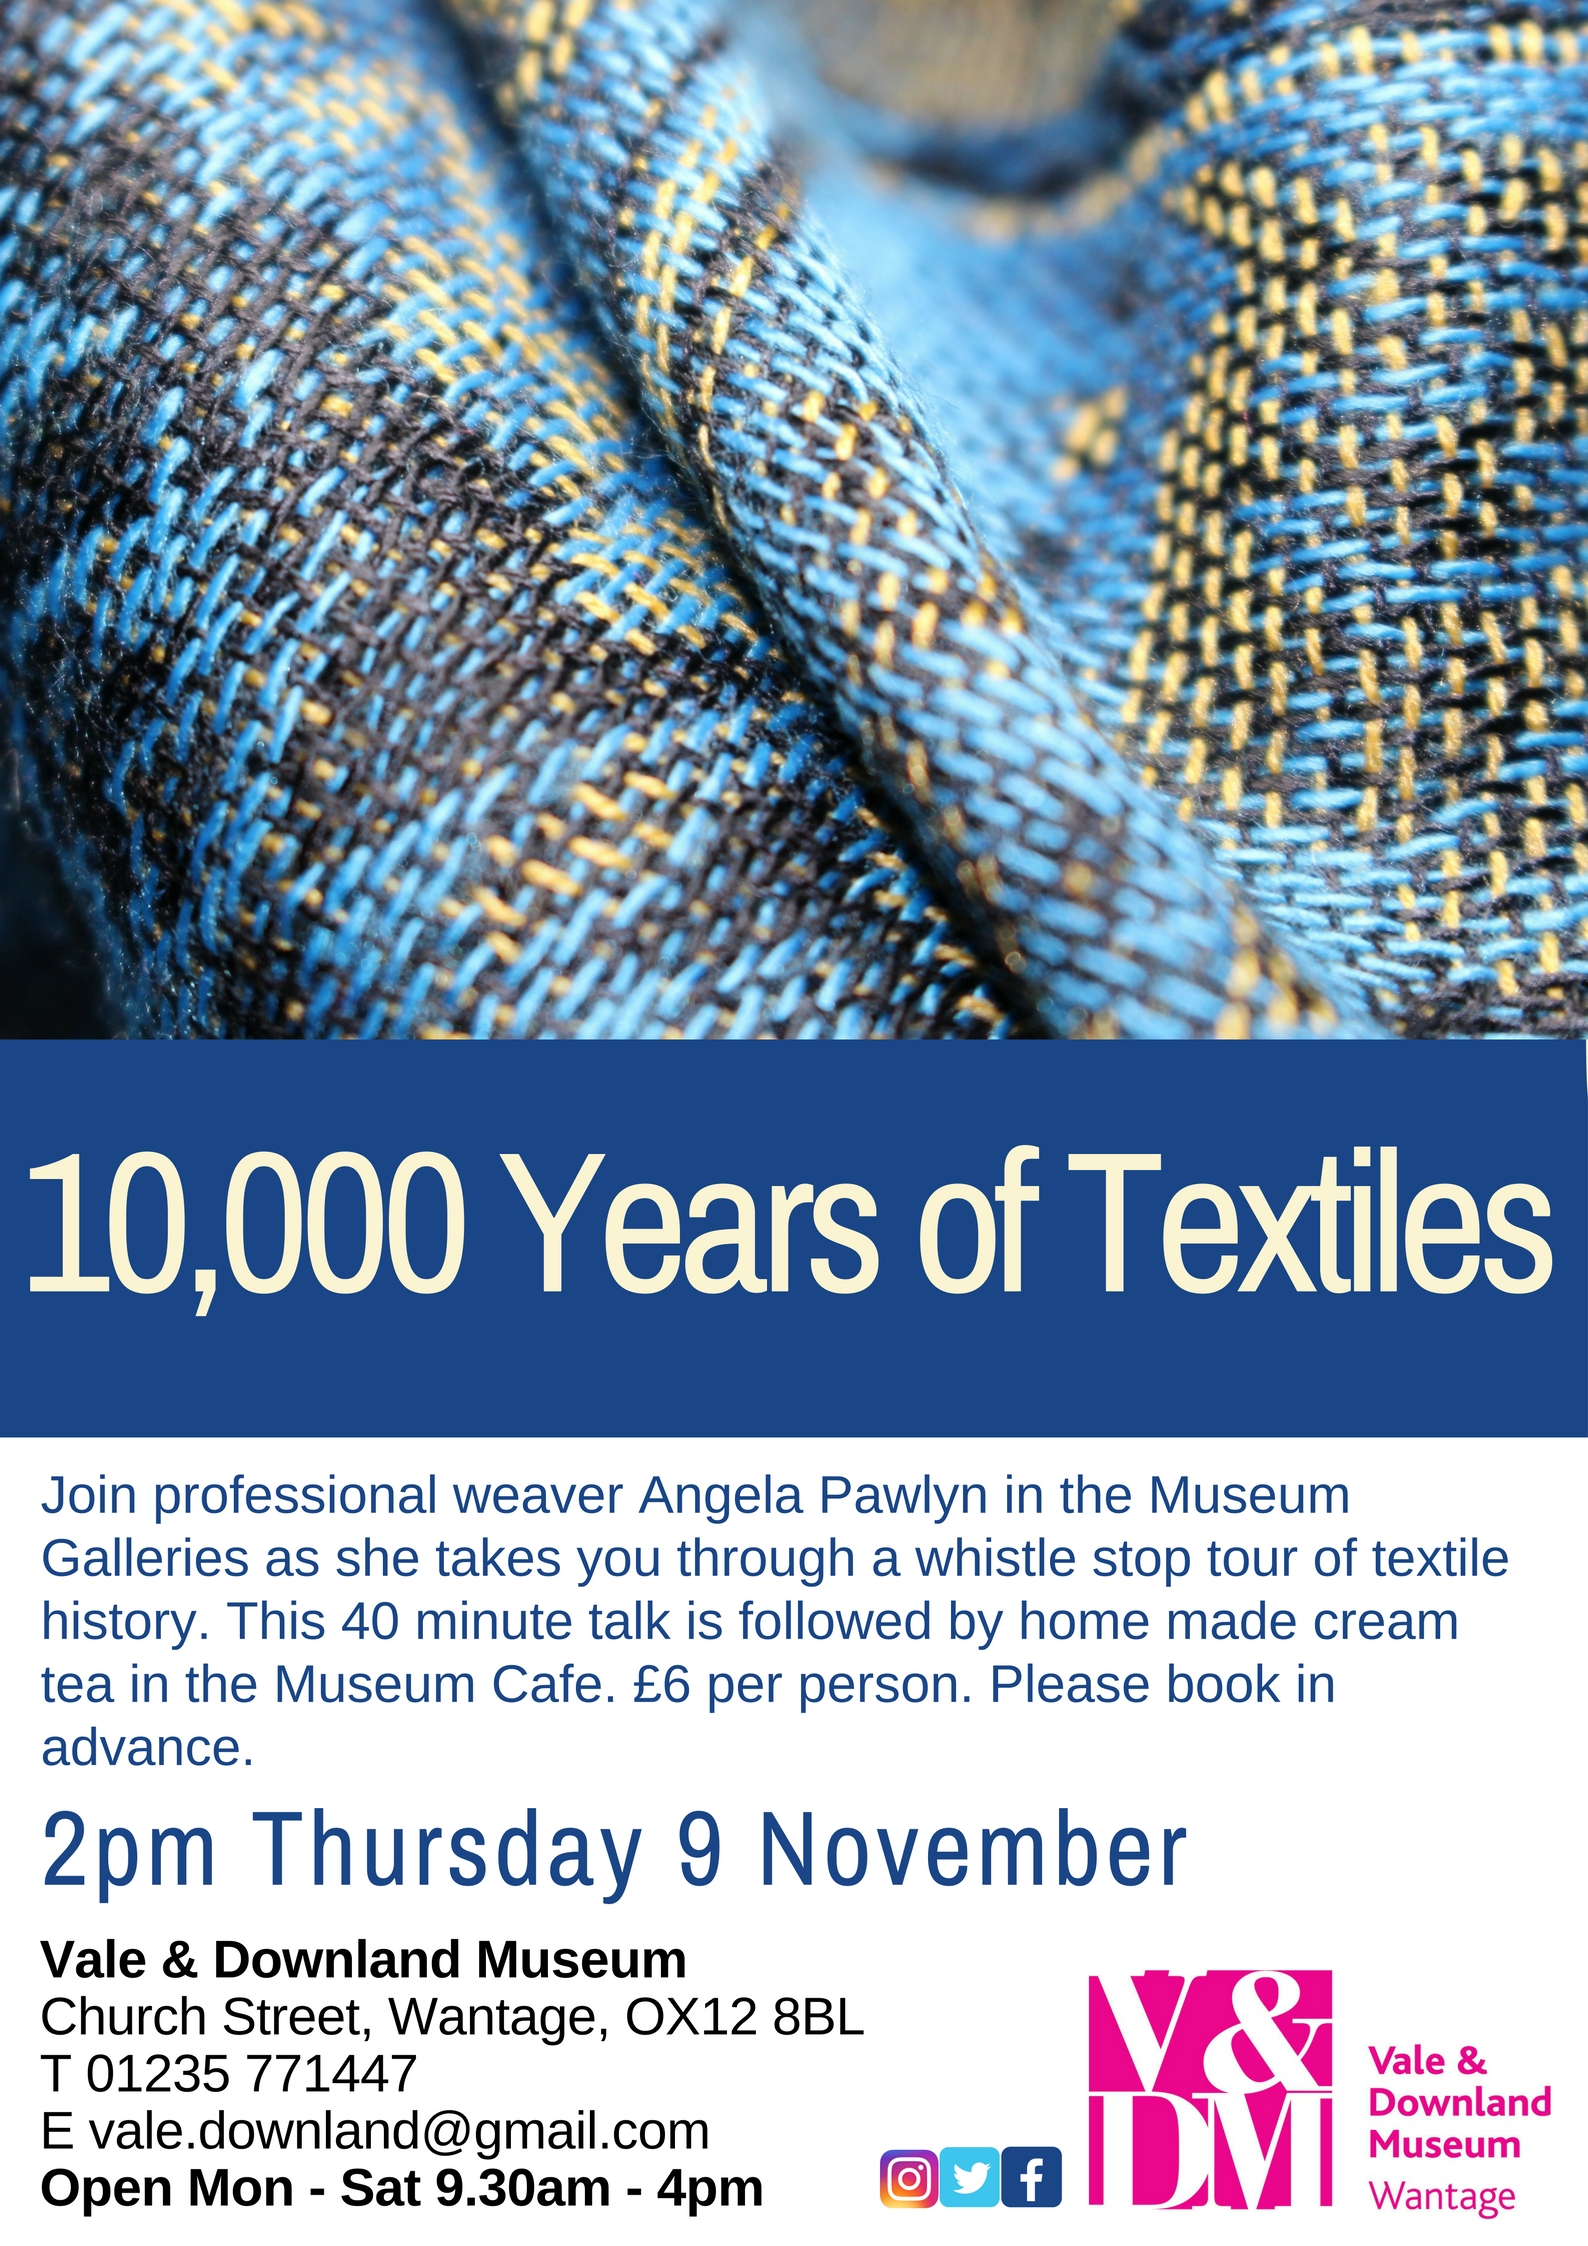 Talks & Teas - 10,000 Years of Textiles